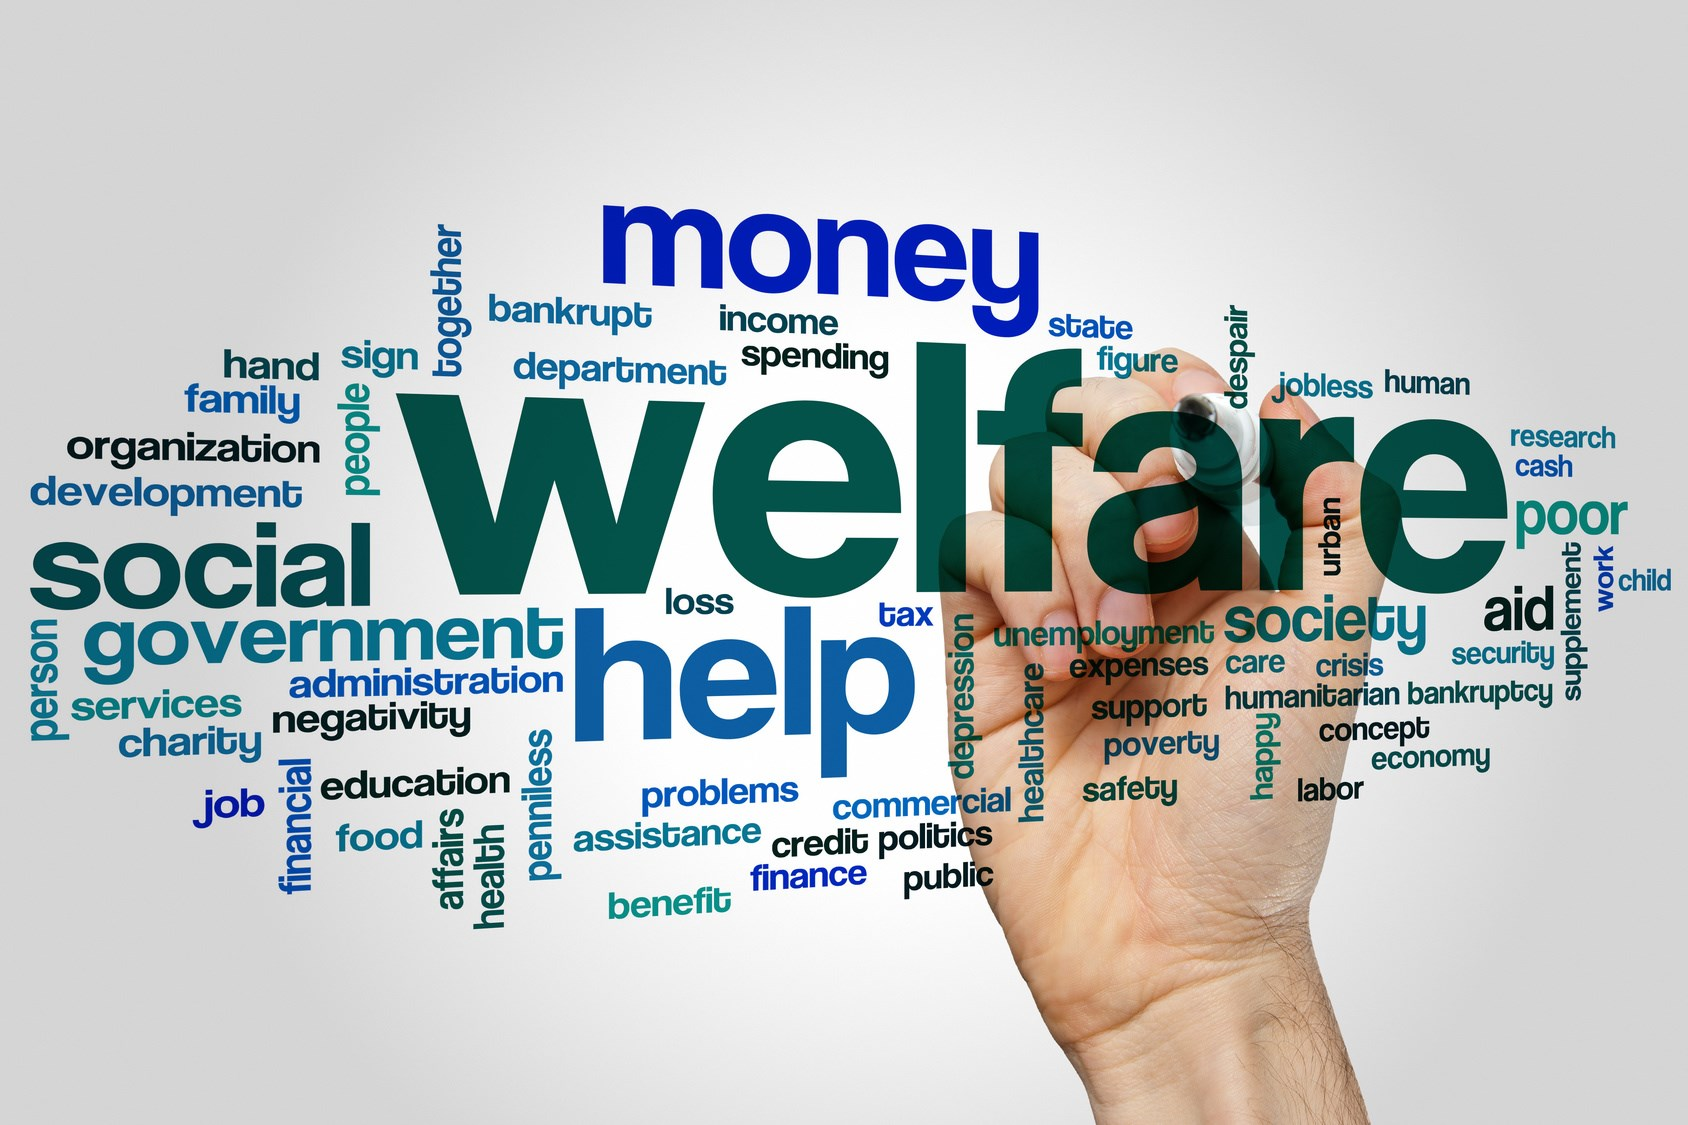 /media/3167/welfare.jpg?anchor=center&mode=crop&width=280&height=187&rnd=131357077050000000